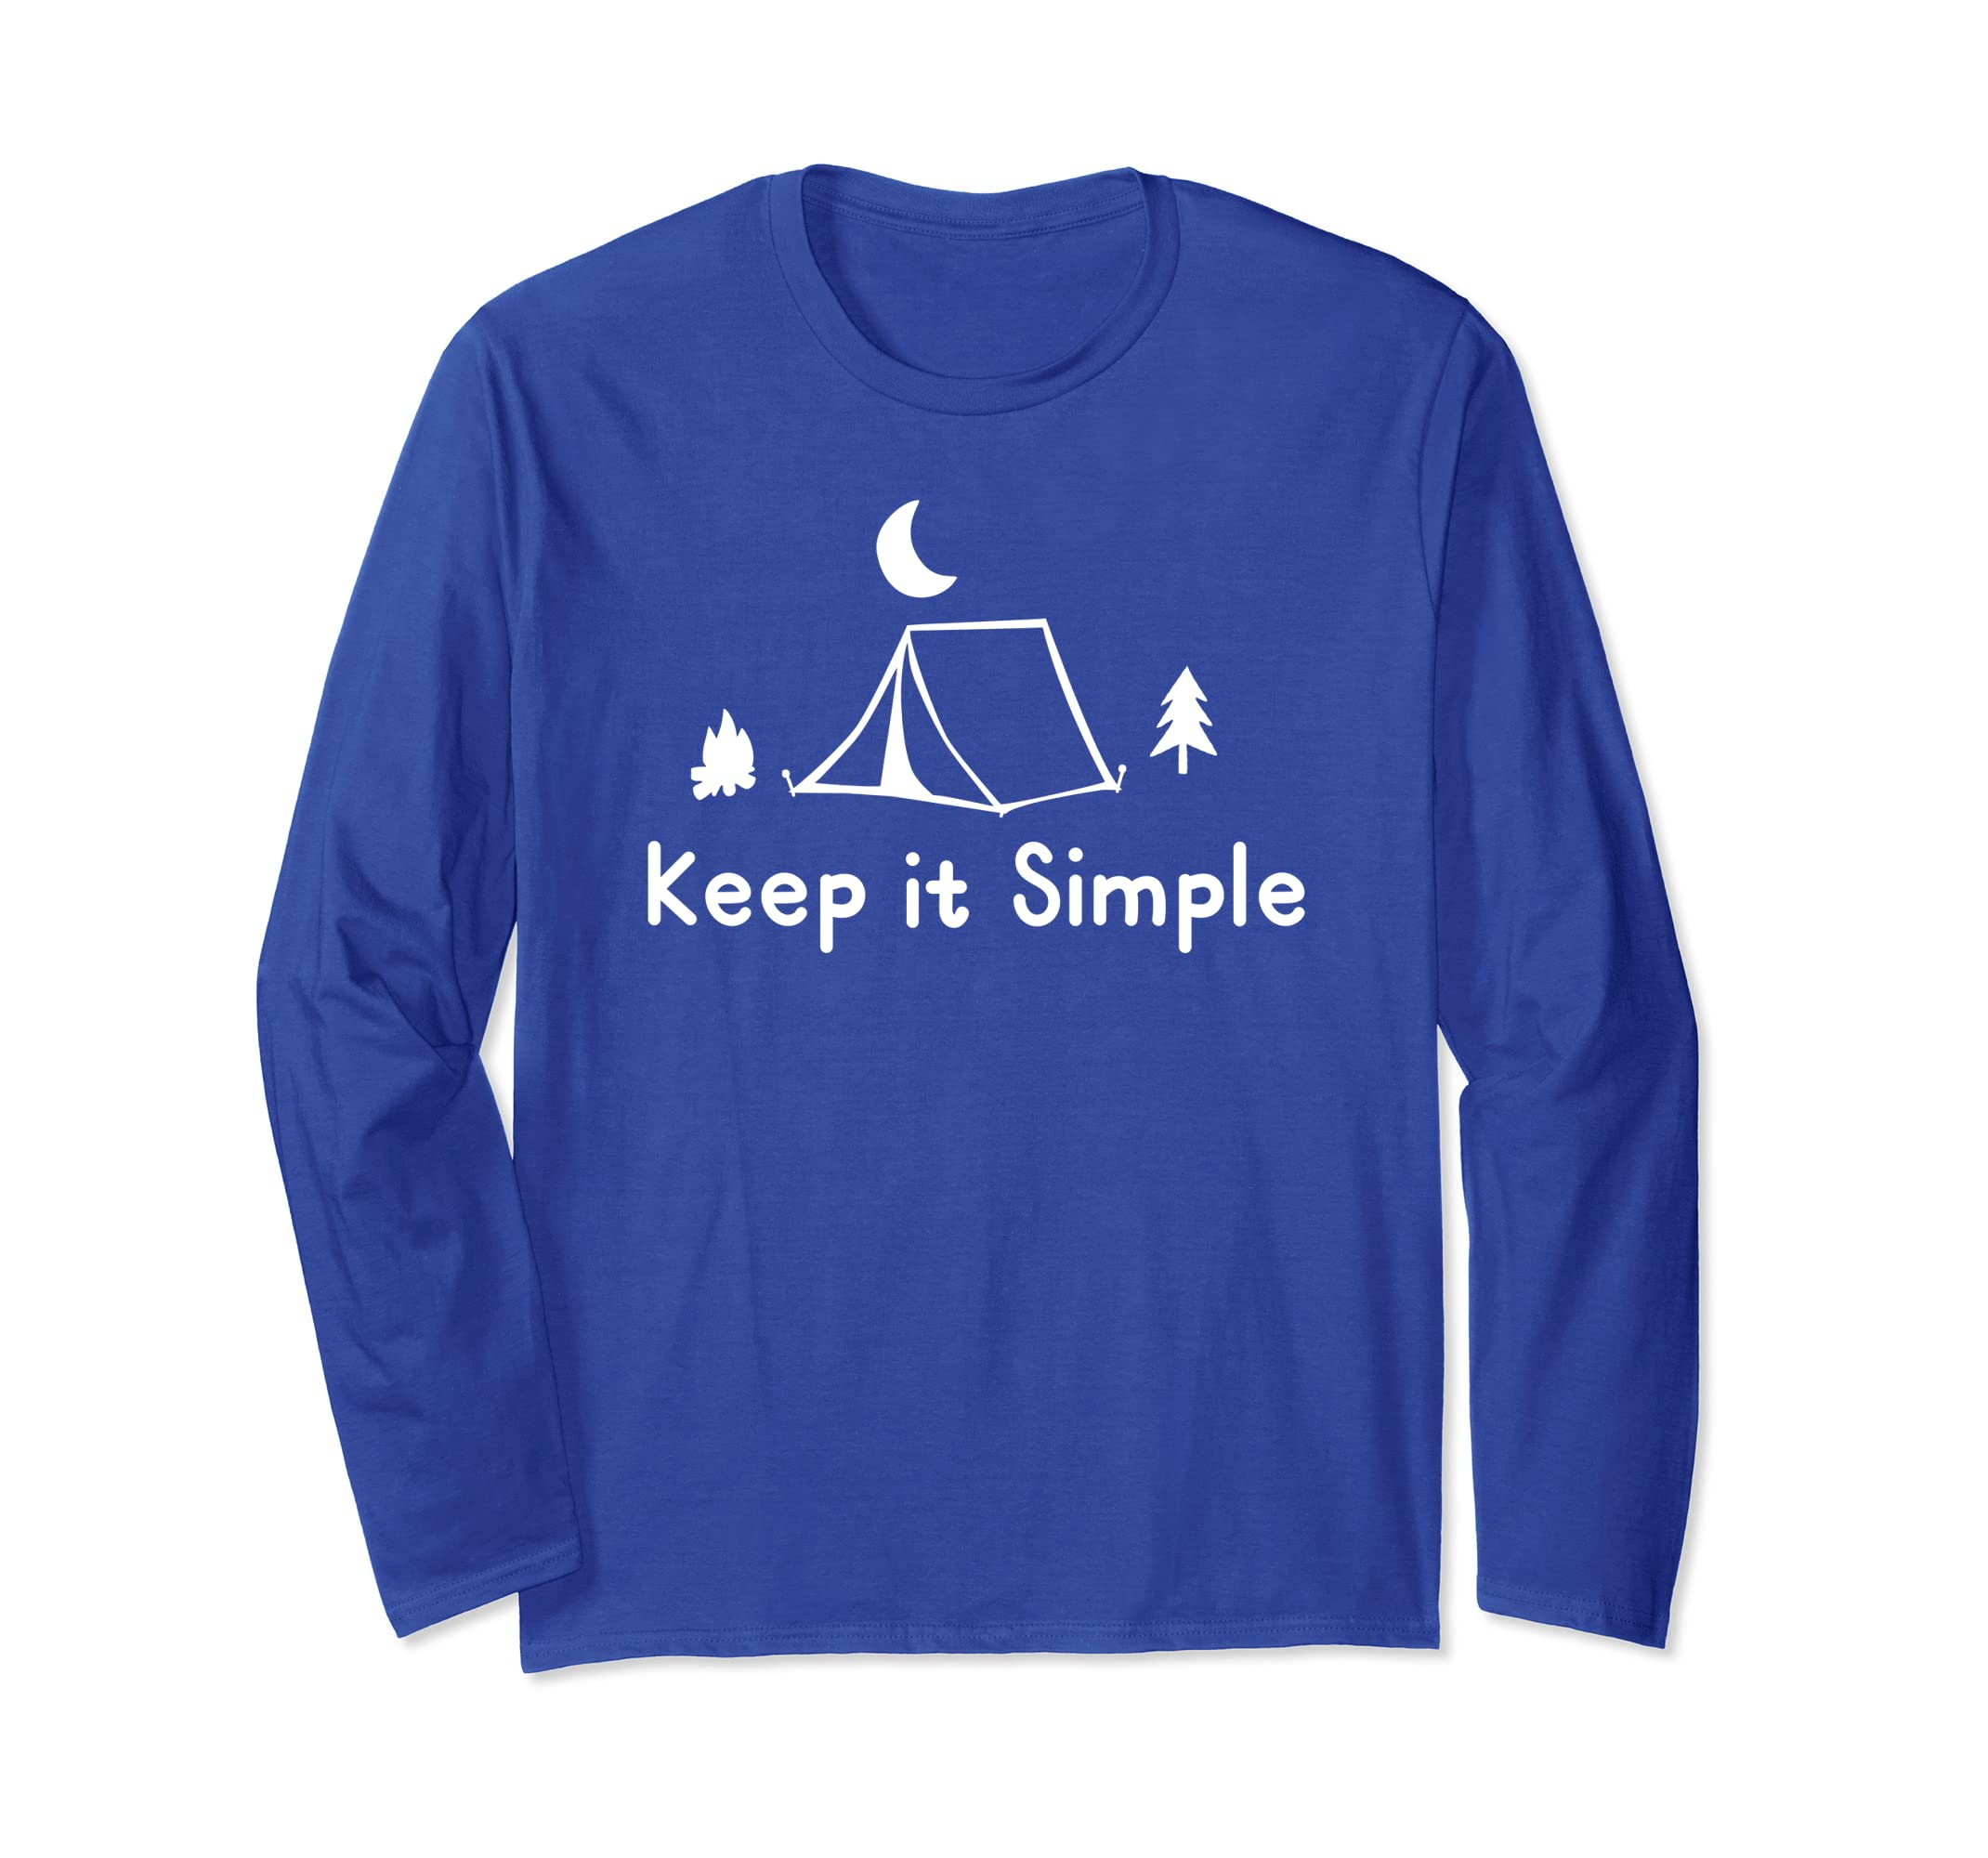 Camping, Tent, Hiking, Nature T shirt / Keep it Simple-ln